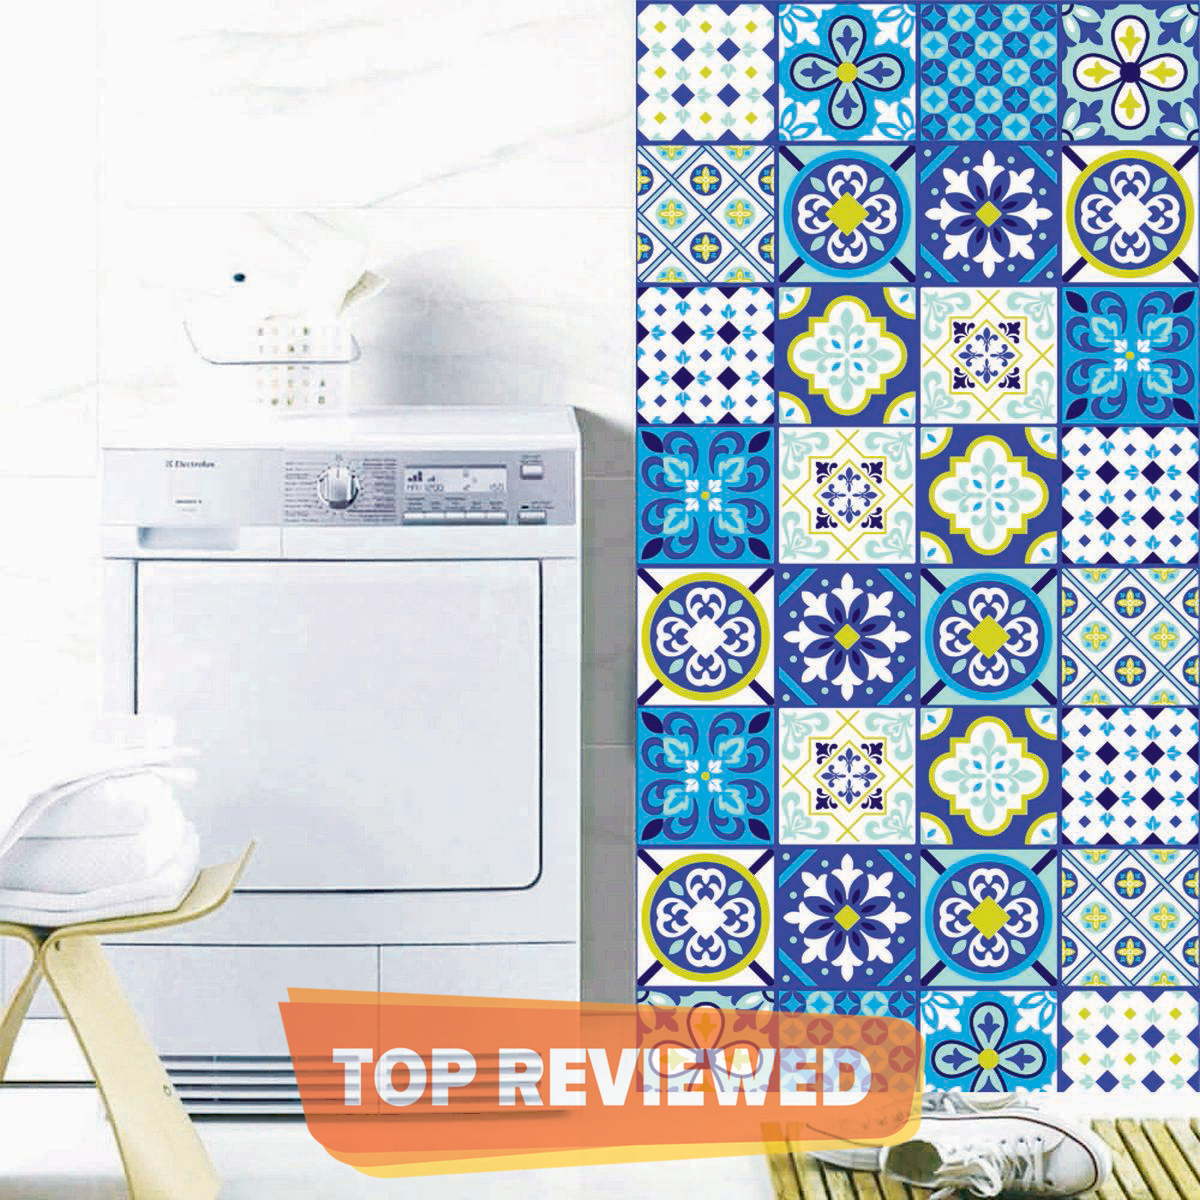 Tile Stickers  Blue Pack of 12 pieces for Home Decor for Walls Self Adhesive Tile Sticker 4.4 in by 4.4 in (12 Pieces)